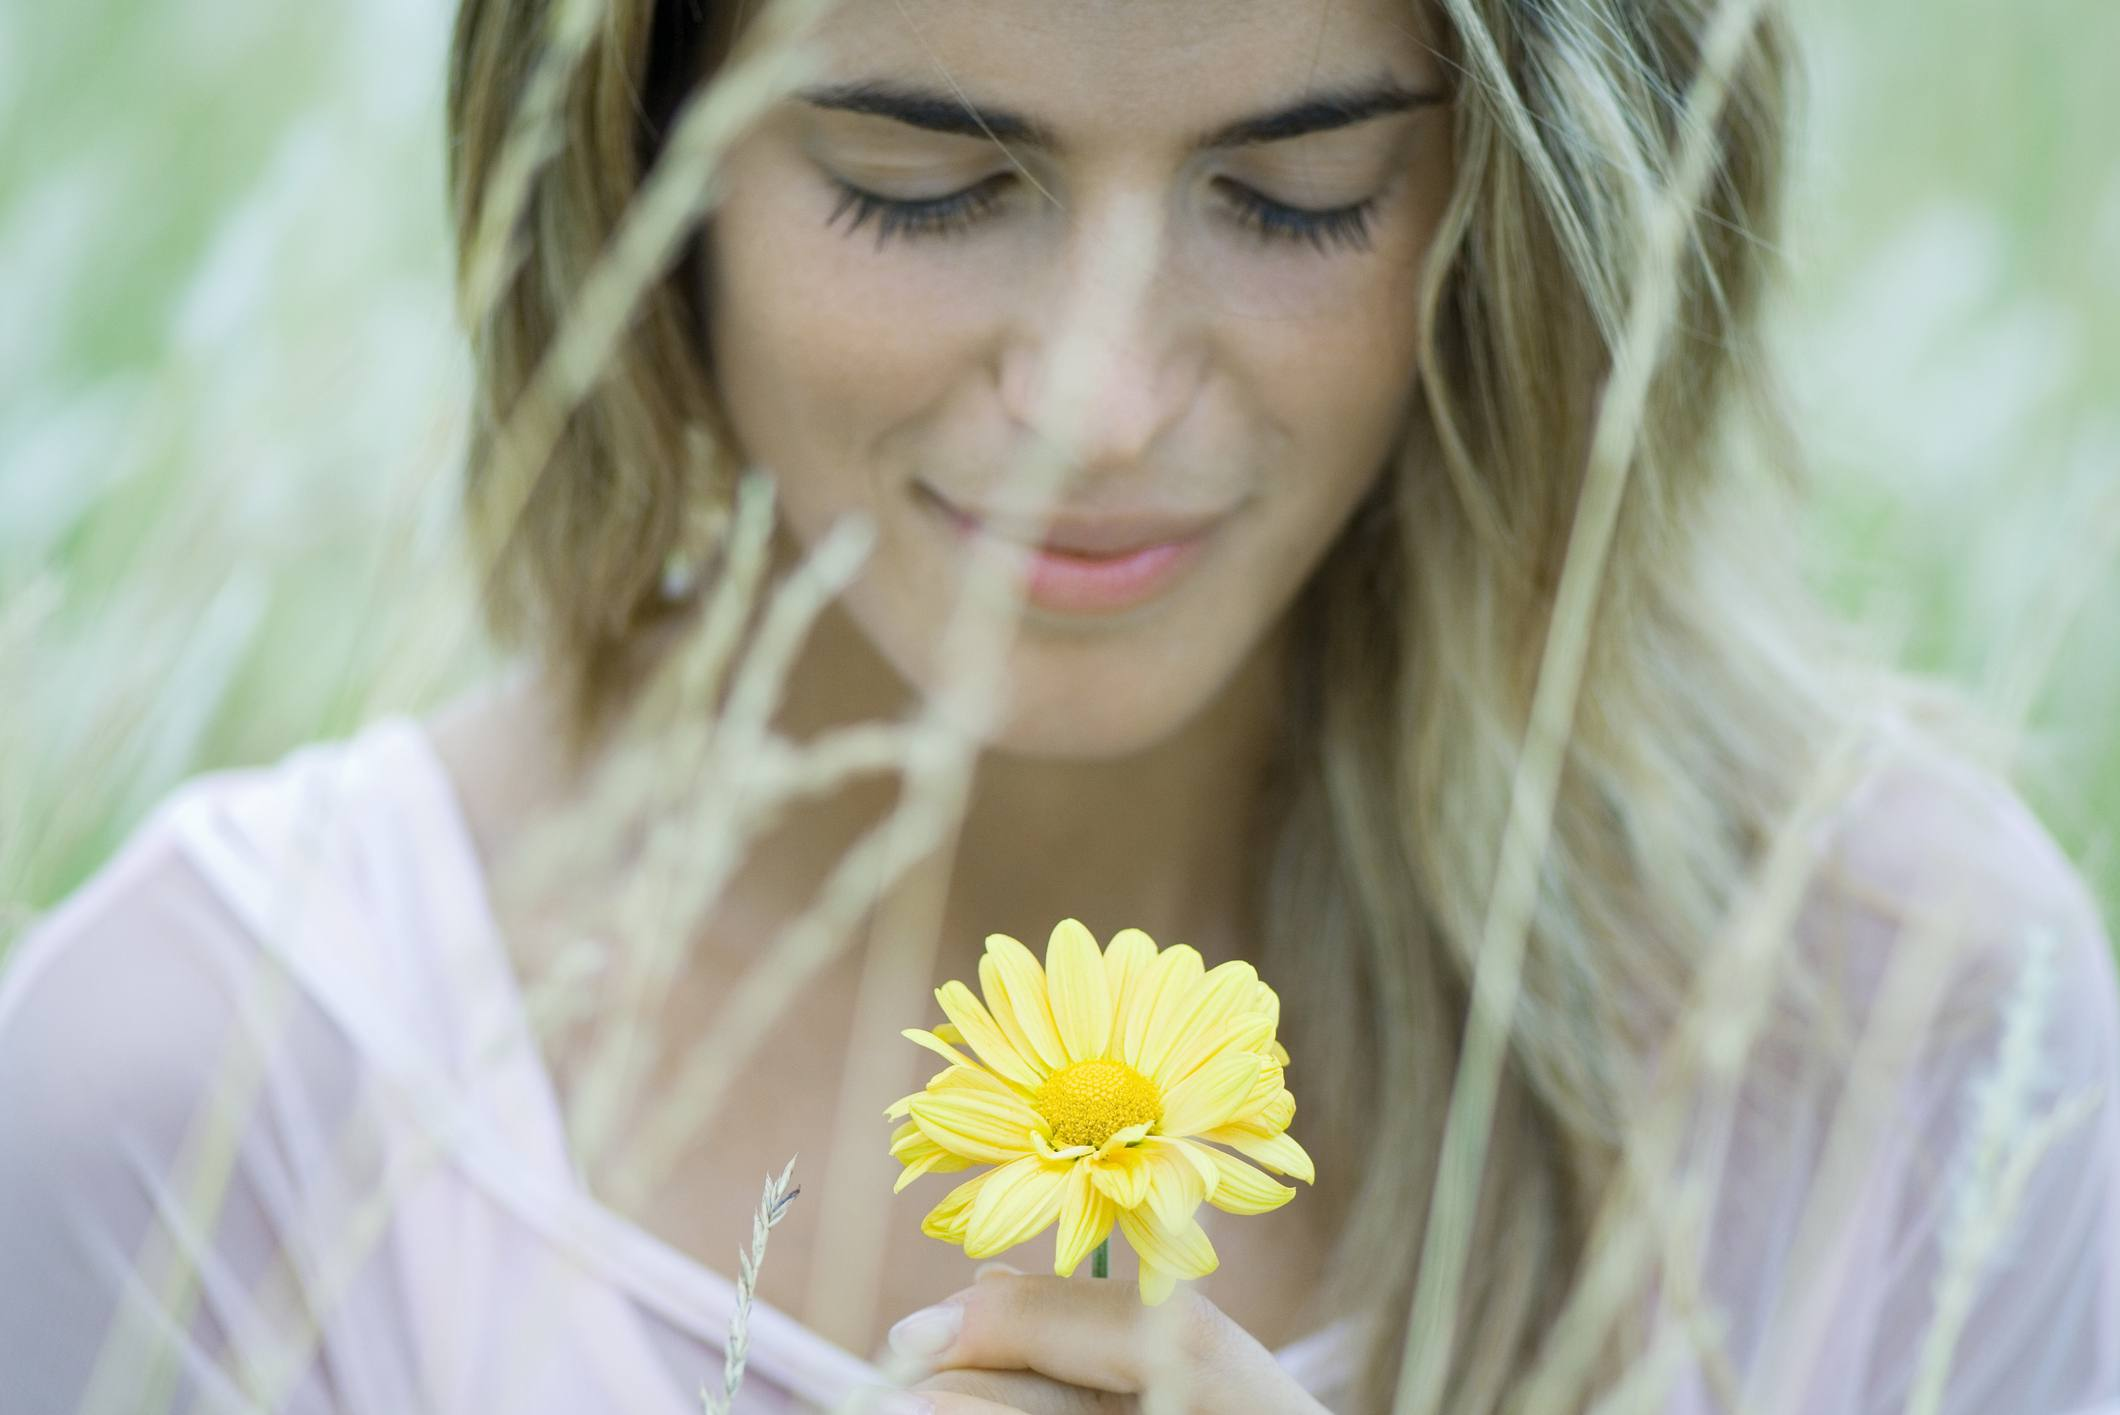 Woman with blond hair looking at flower